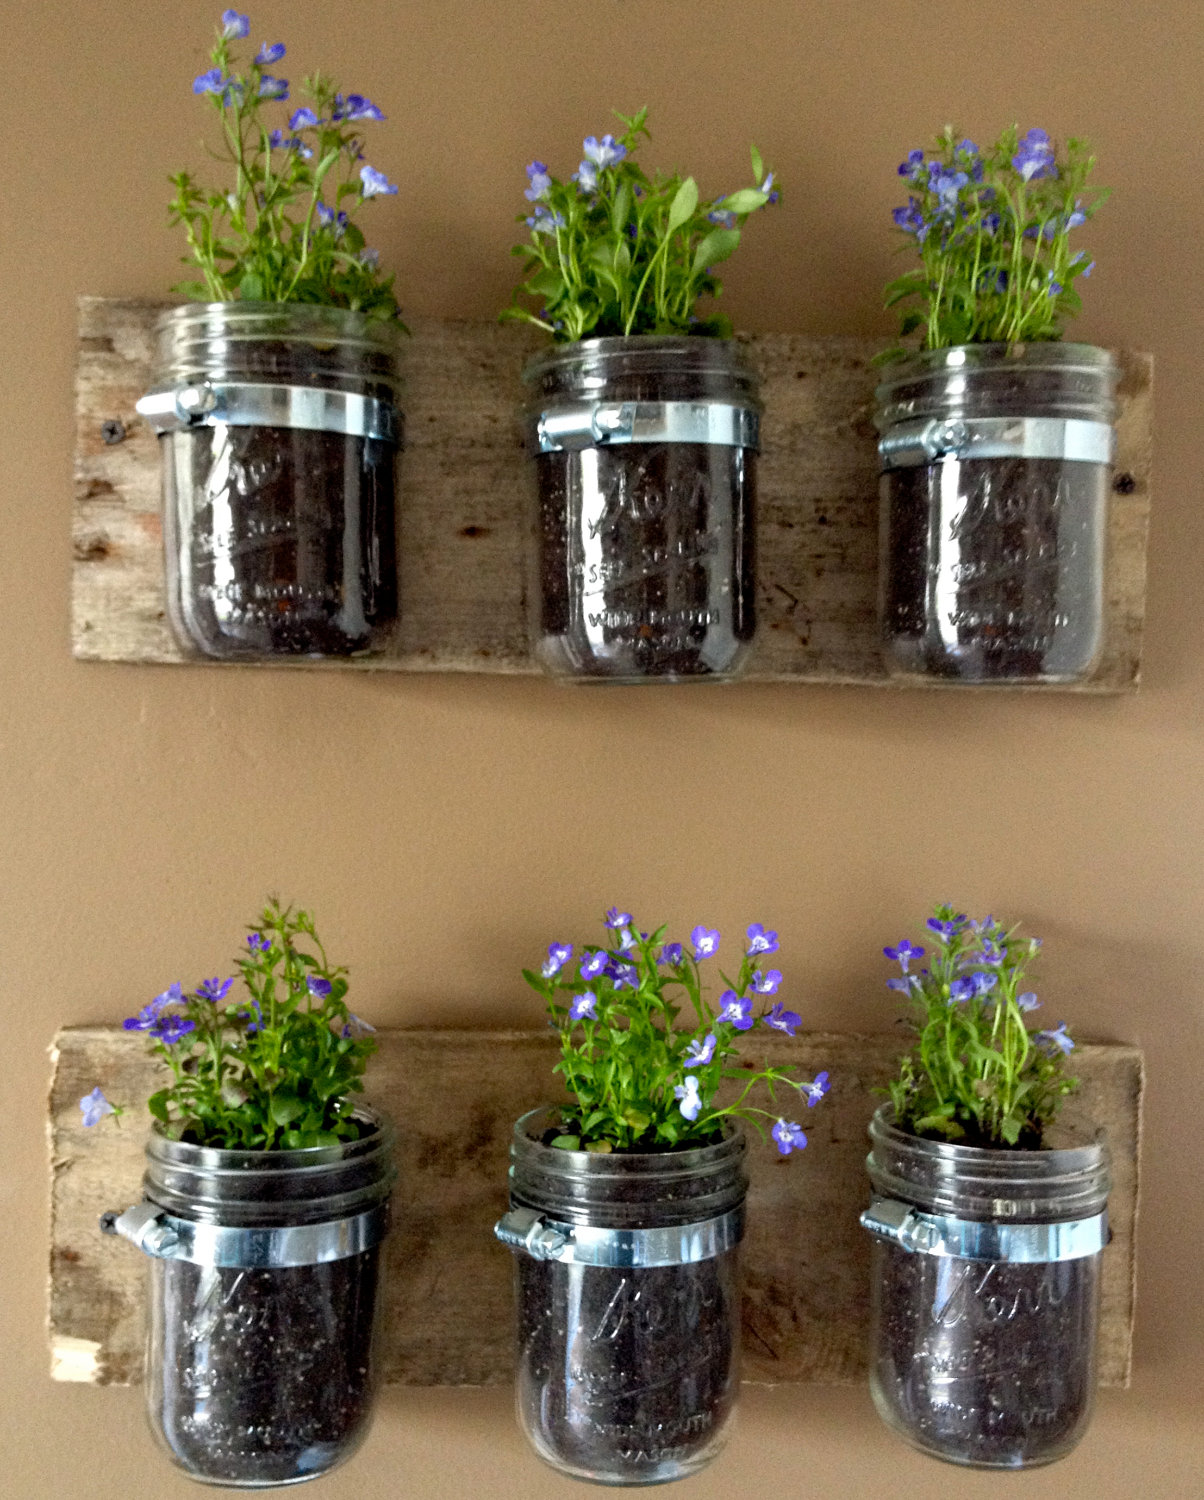 25 Cool And Handmade Planter Designs Style Motivation